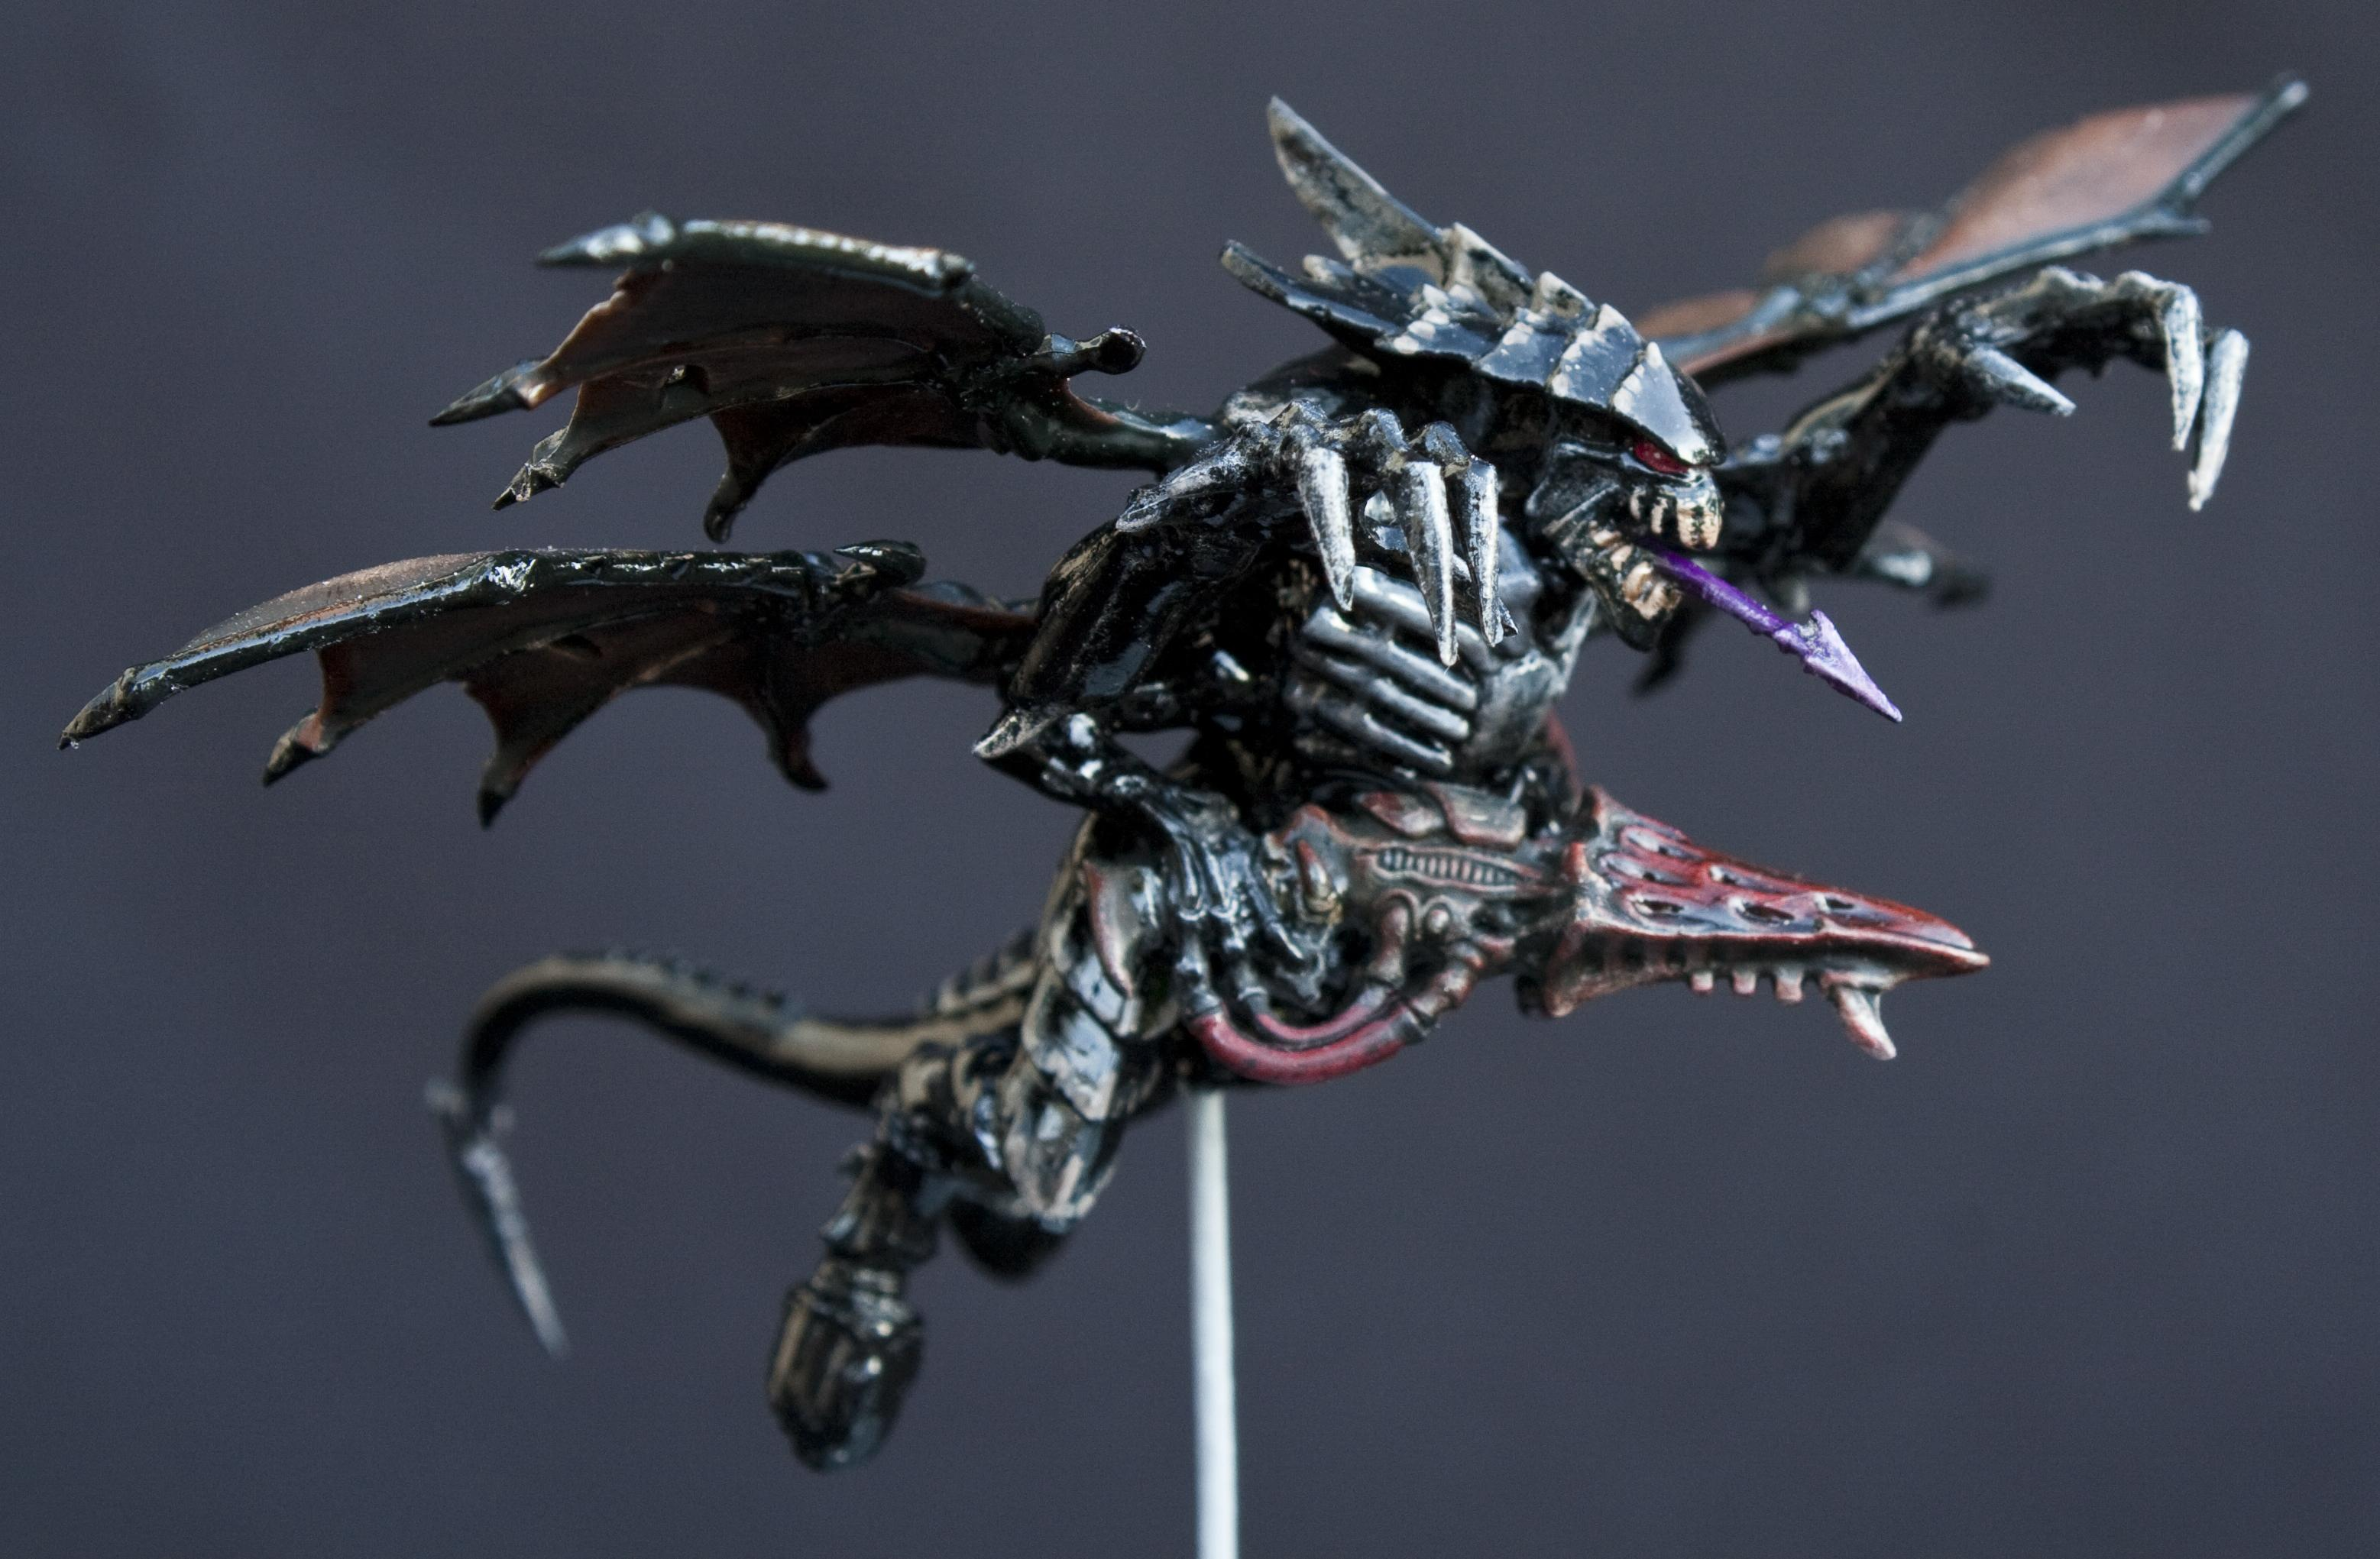 Black, Conversion, Flying, Glossy, Shrike, Shrikes, Tyranids, Warhammer 40,000, Winged